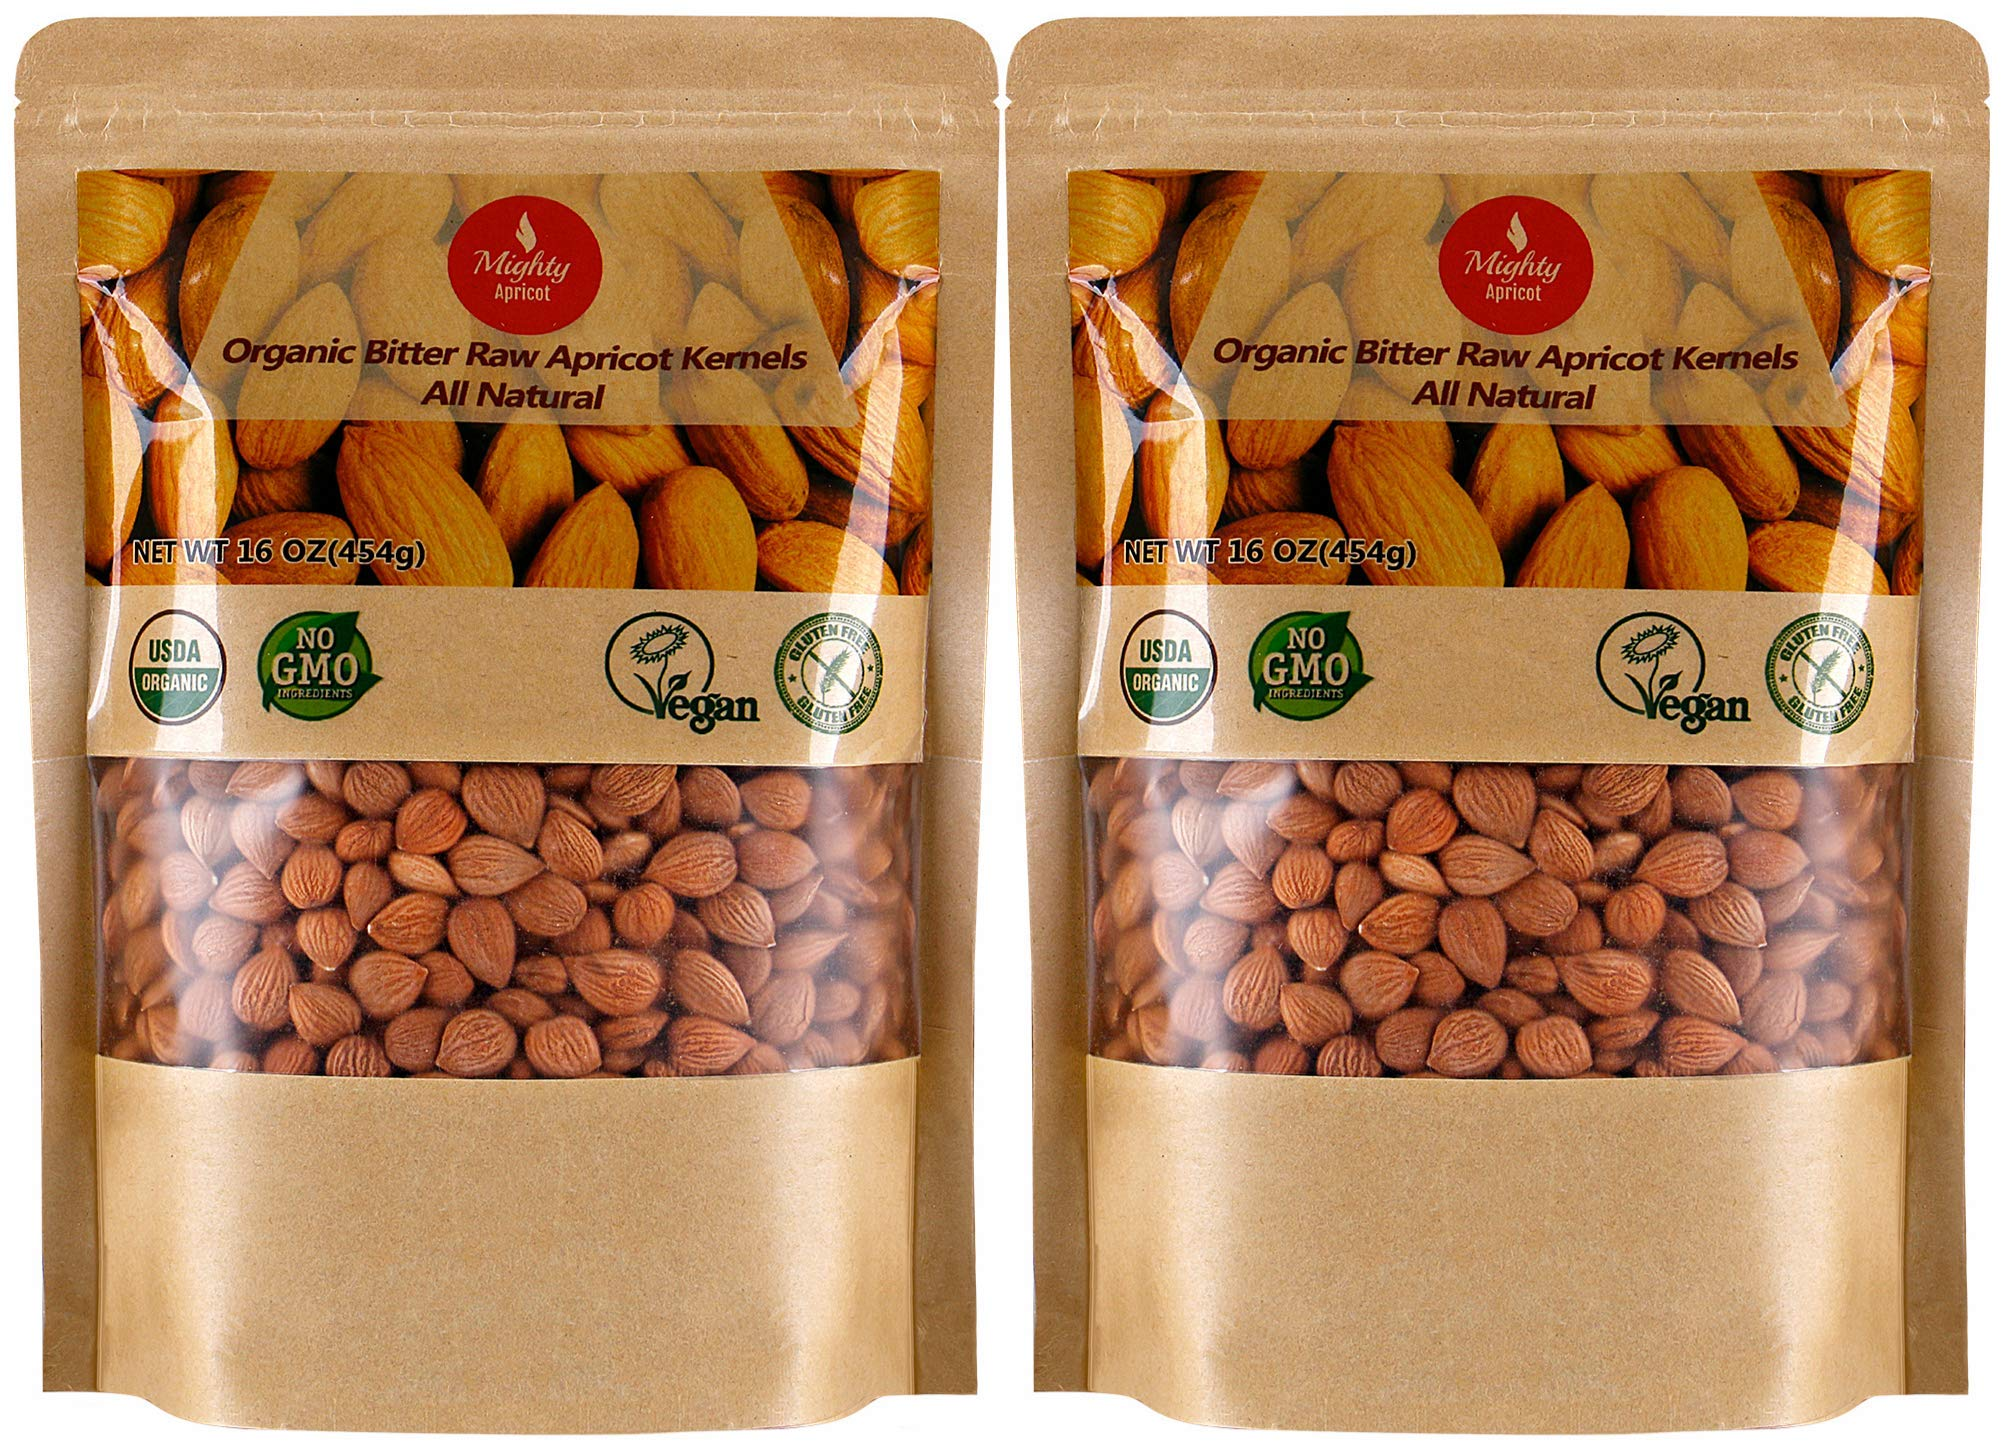 Organic Bitter Apricot Kernels(1LB) 16oz, Natural Raw USDA Organic Bitter Apricot Seeds, Vegan, Non-GMO, Gluten Free, Great source of Vitamin B17 and B15 (2 Pack) by Mighty Apricot (Image #1)